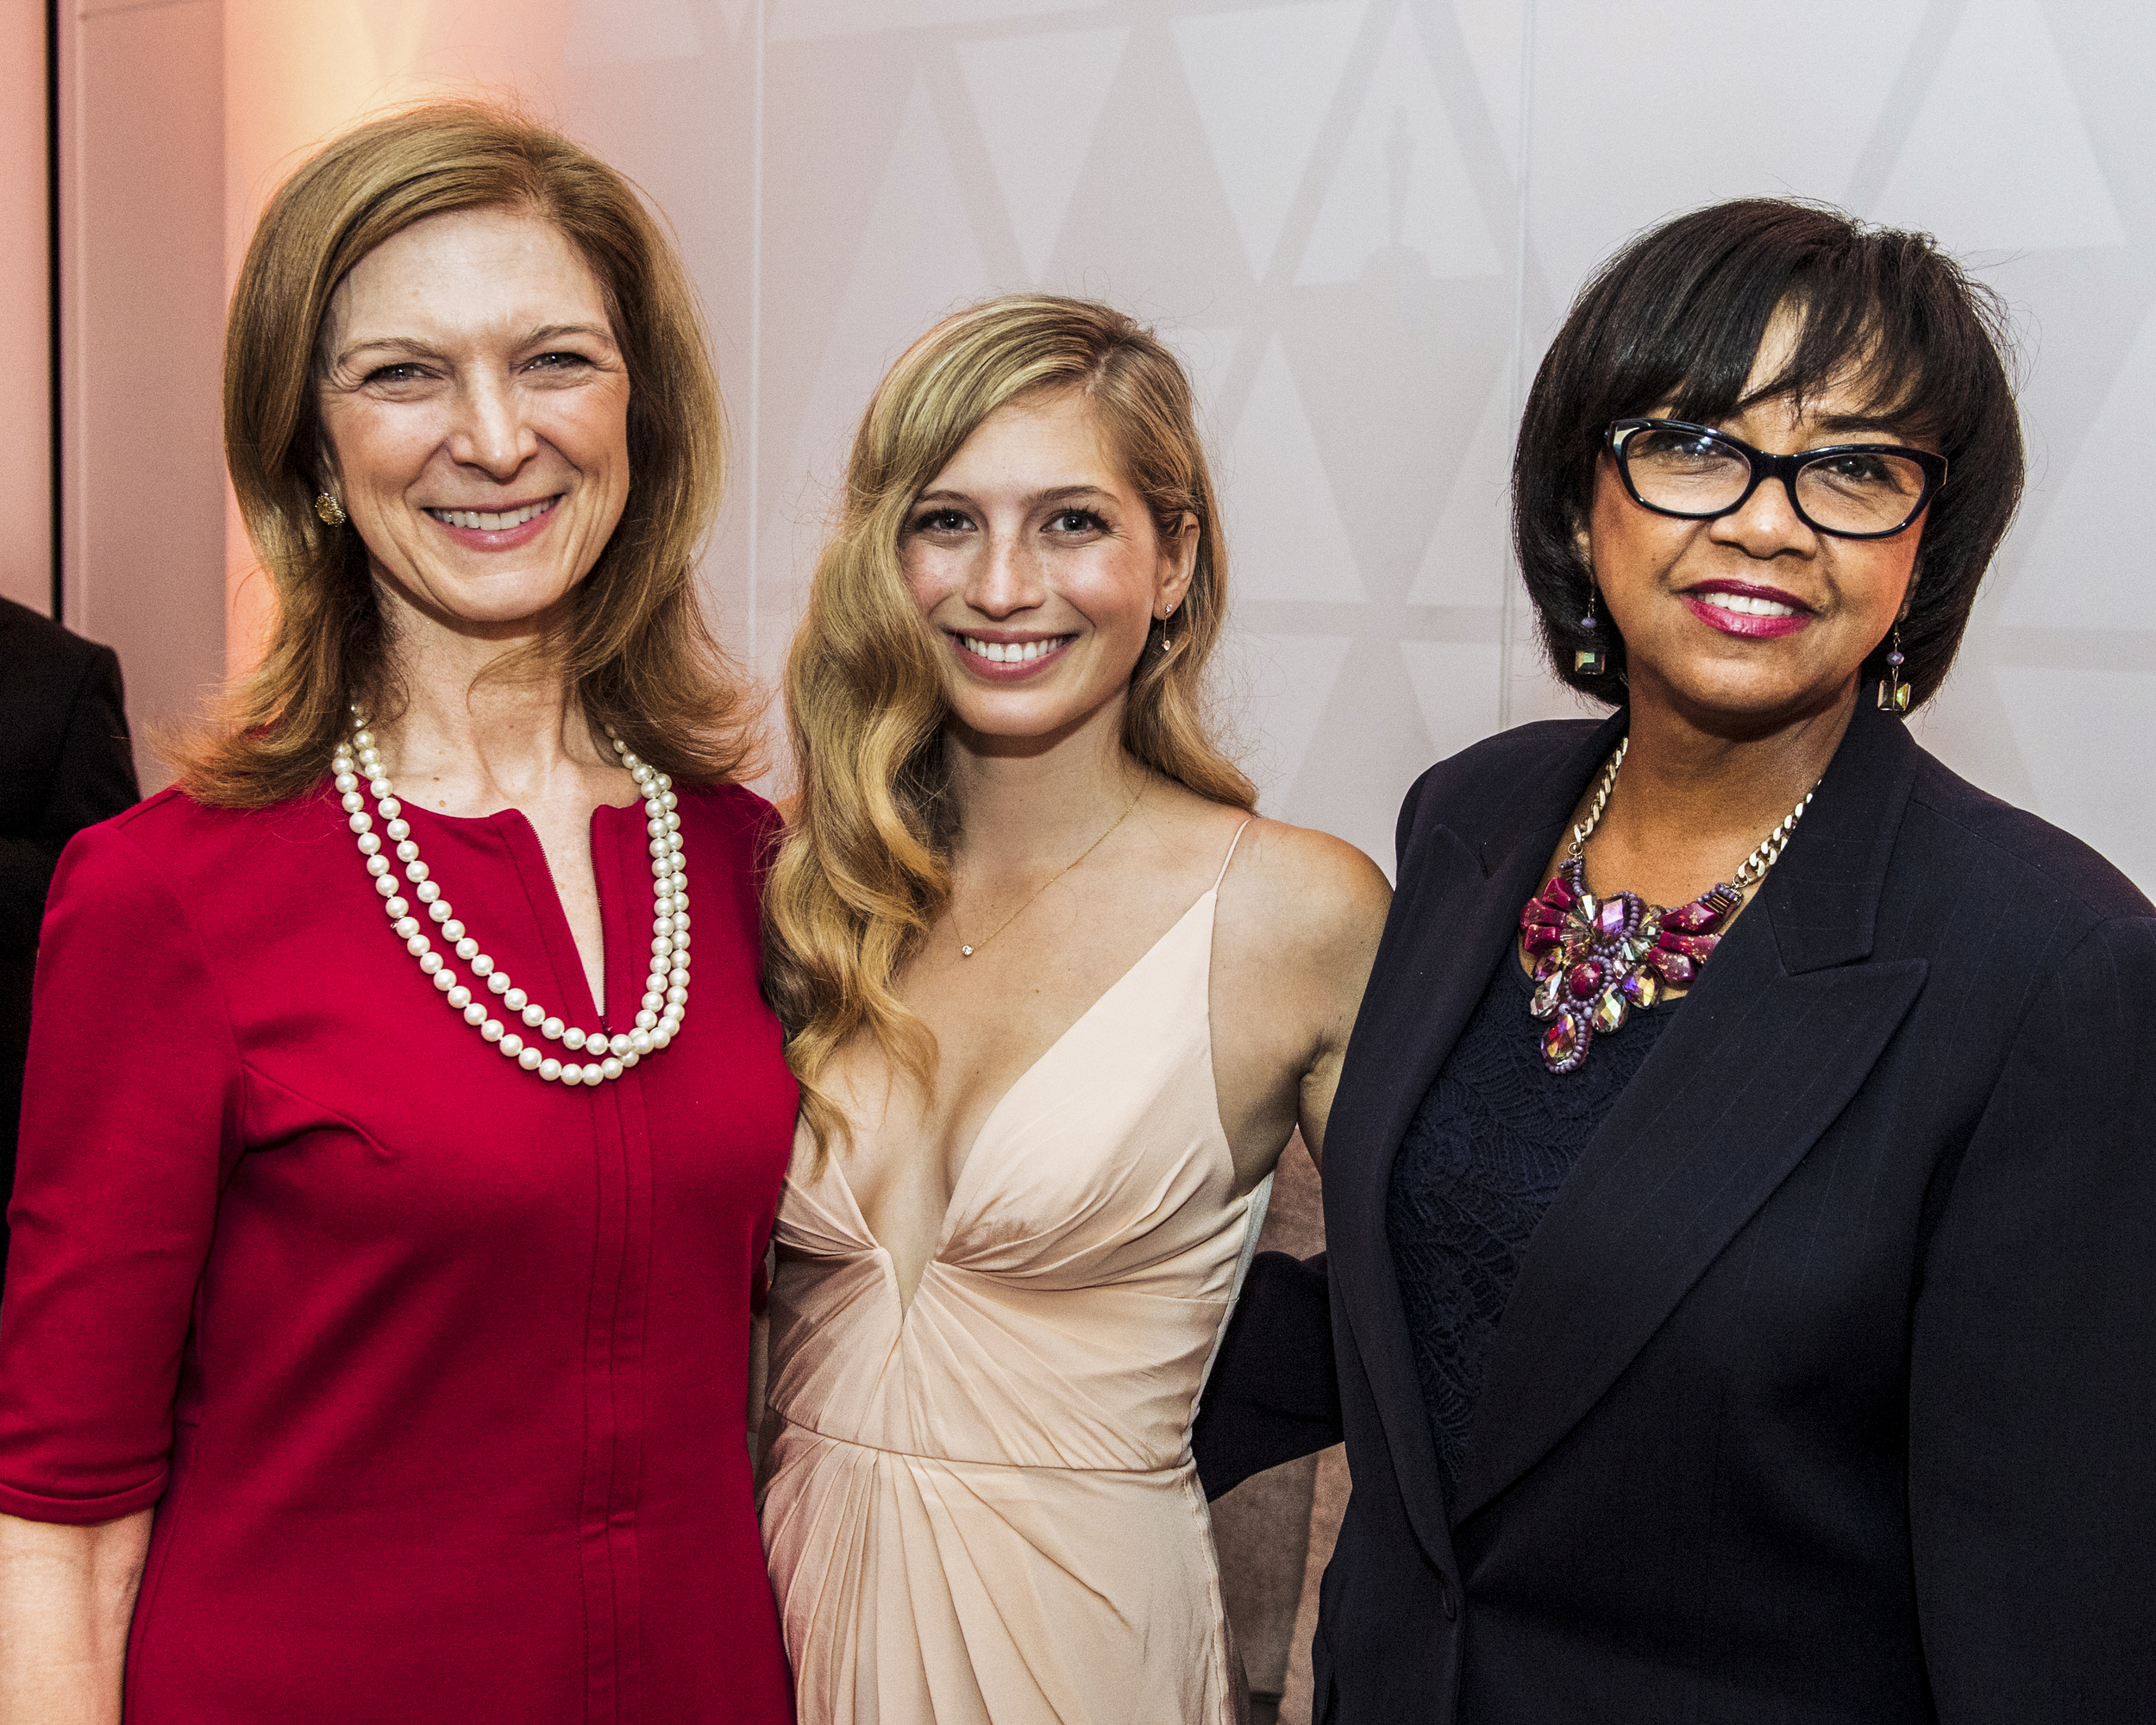 Director Emily Kassie with the Director and CEO of the Academy of Motion Pictures and Sciences